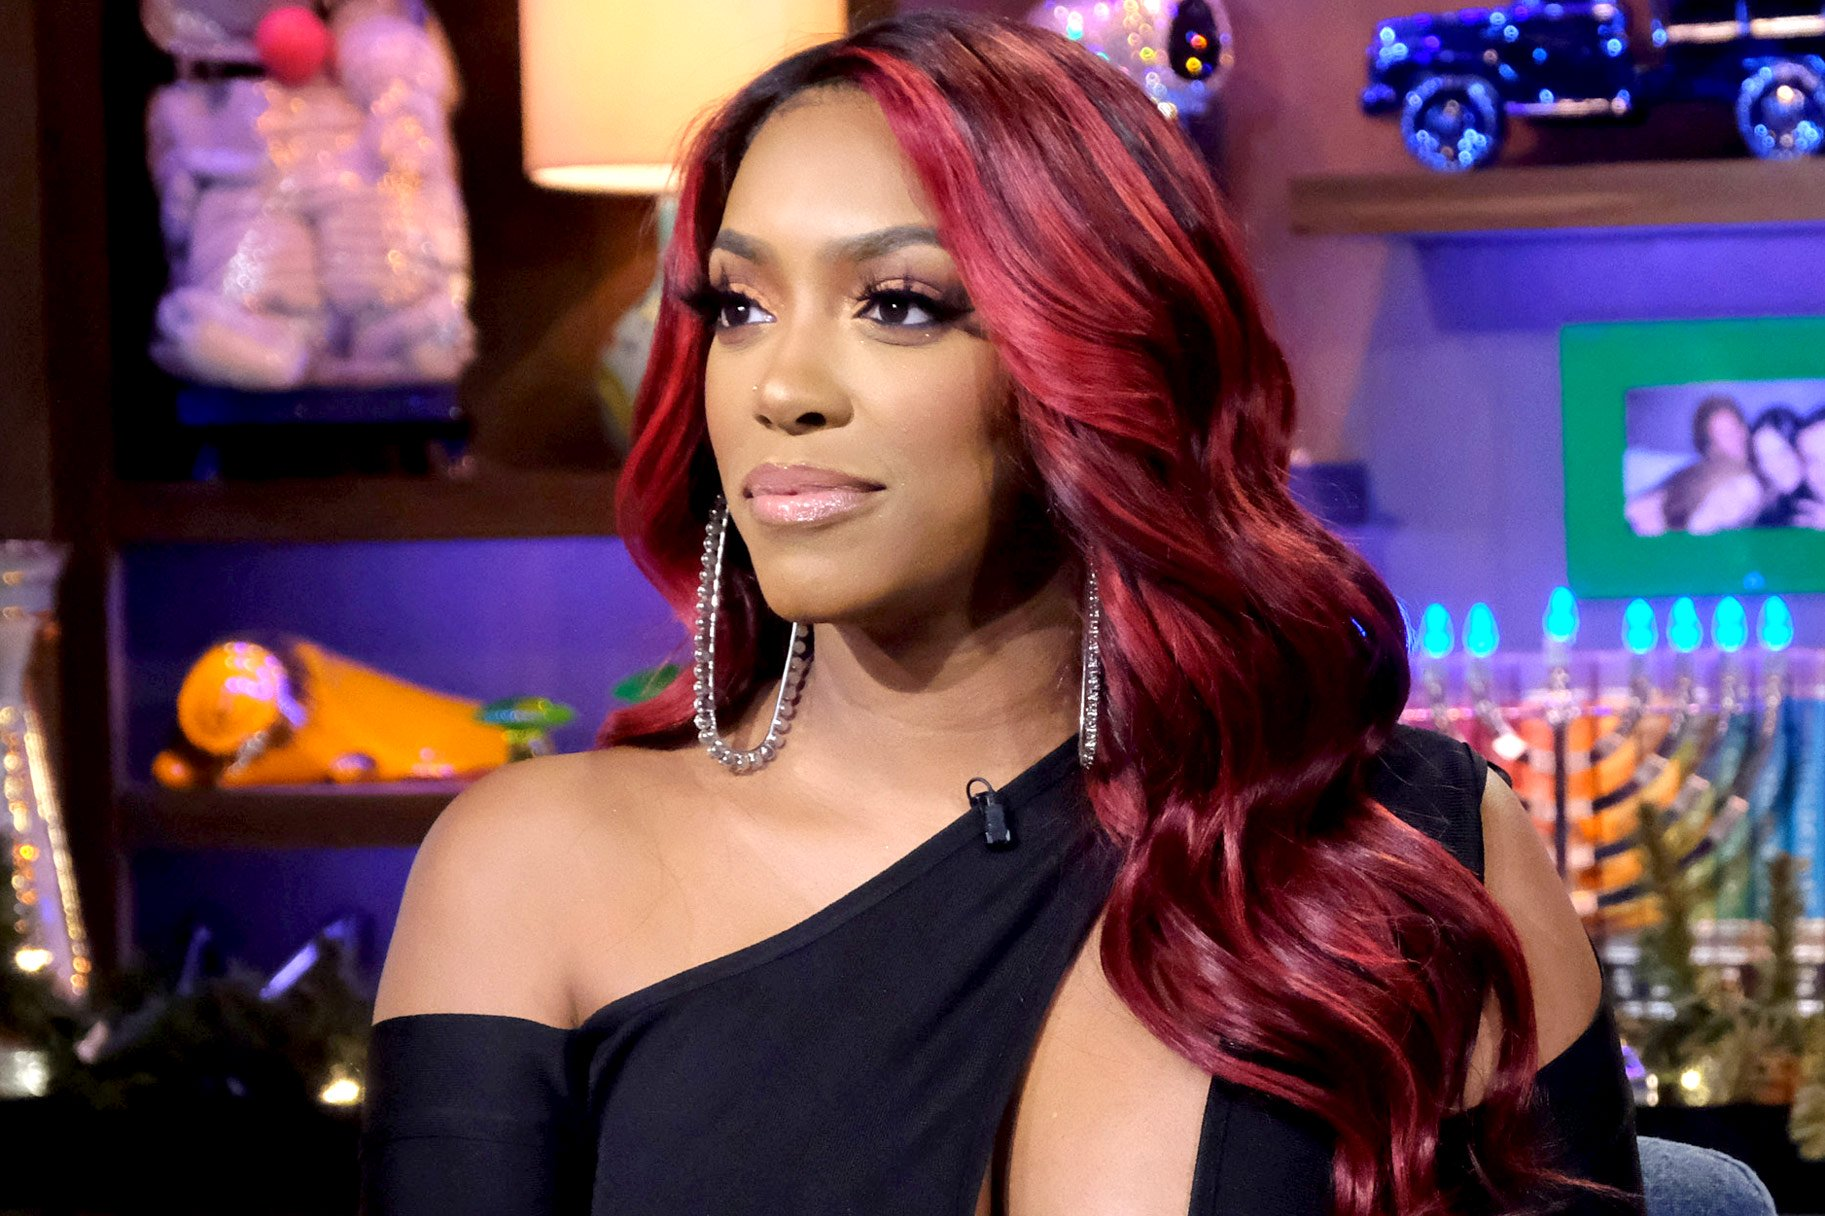 Porsha Williams Live Video Raised Awareness About Black Mothers And Kids: 'We Are Facing A Black Maternal Health Crisis'